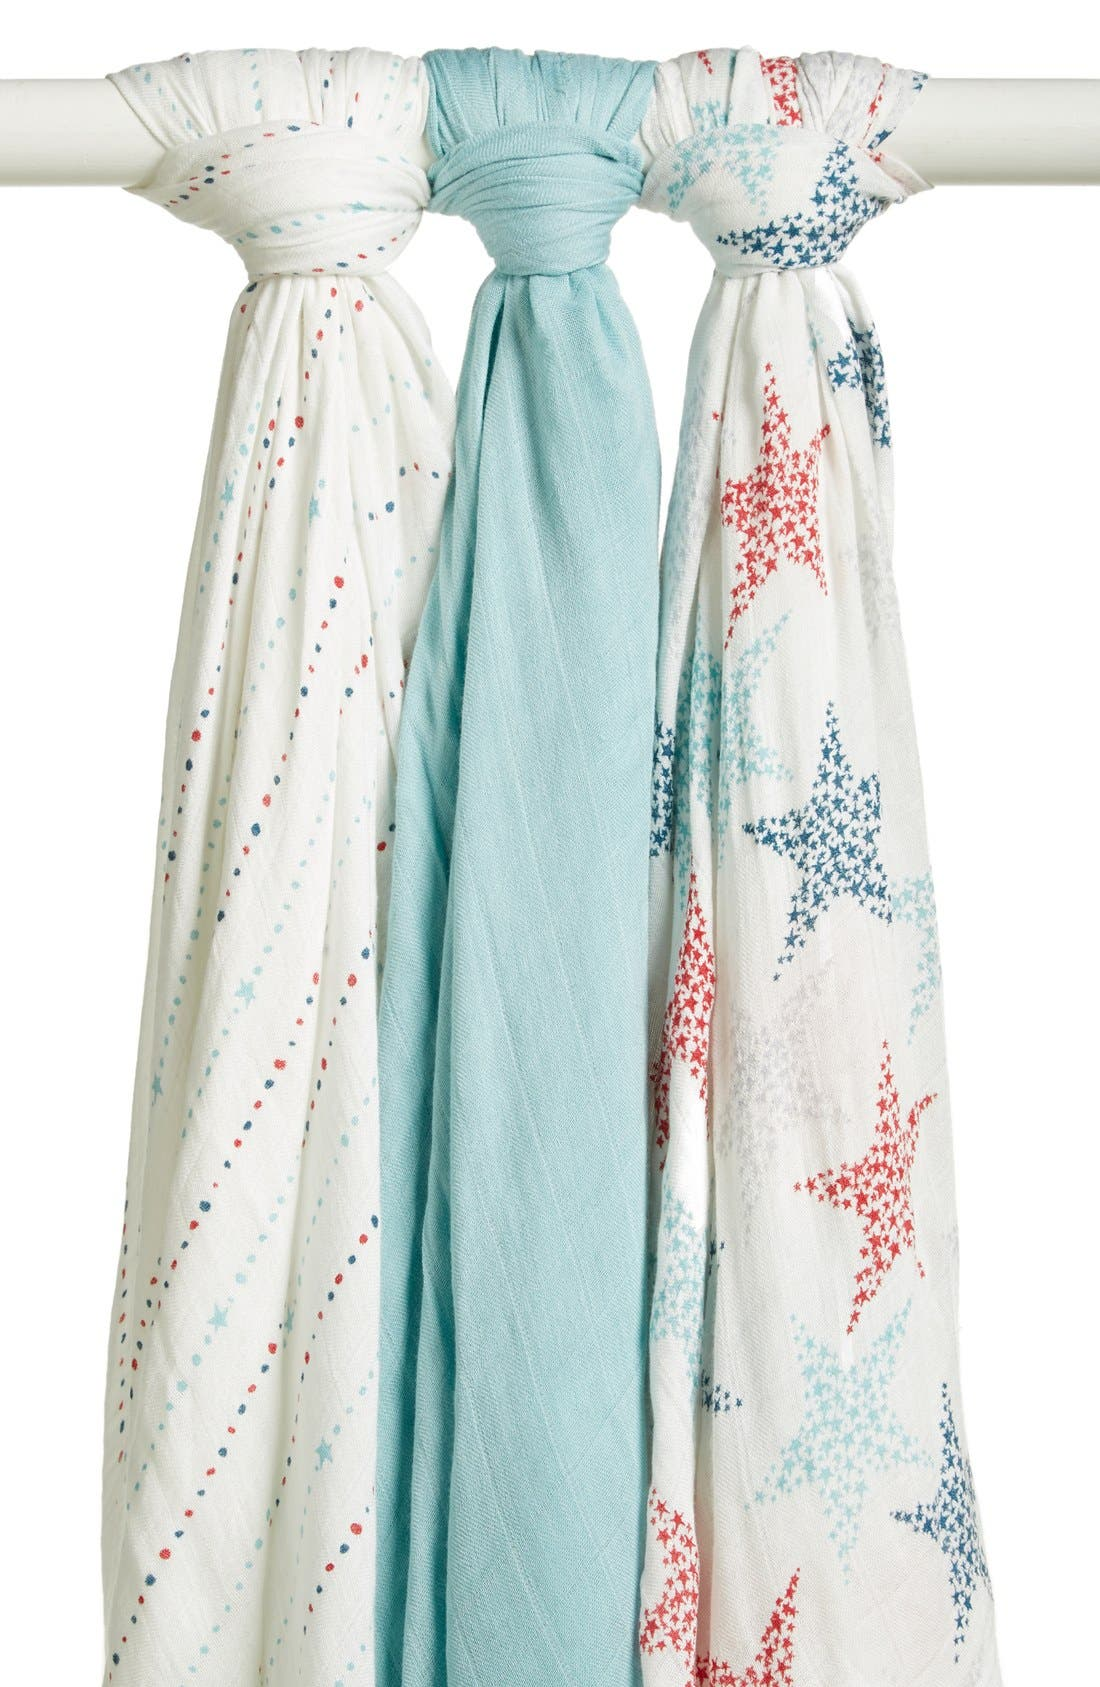 Alternate Image 1 Selected - aden + anais Print Swaddling Blanket (3-Pack) (Nordstrom Exclusive)